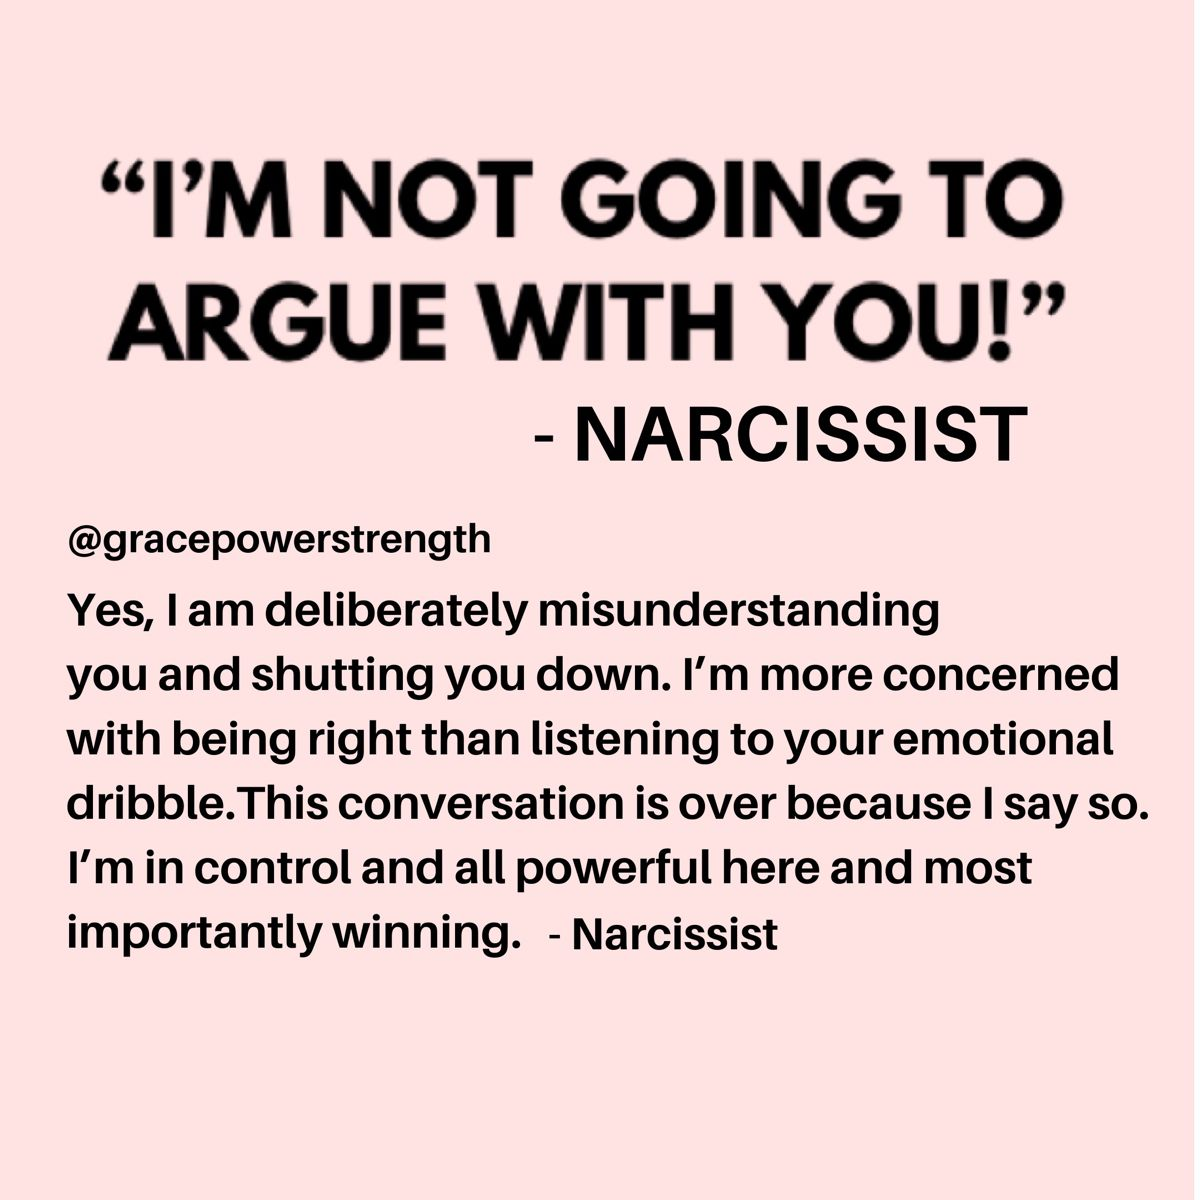 Narcissist and Control Narcissistic abuse/ control